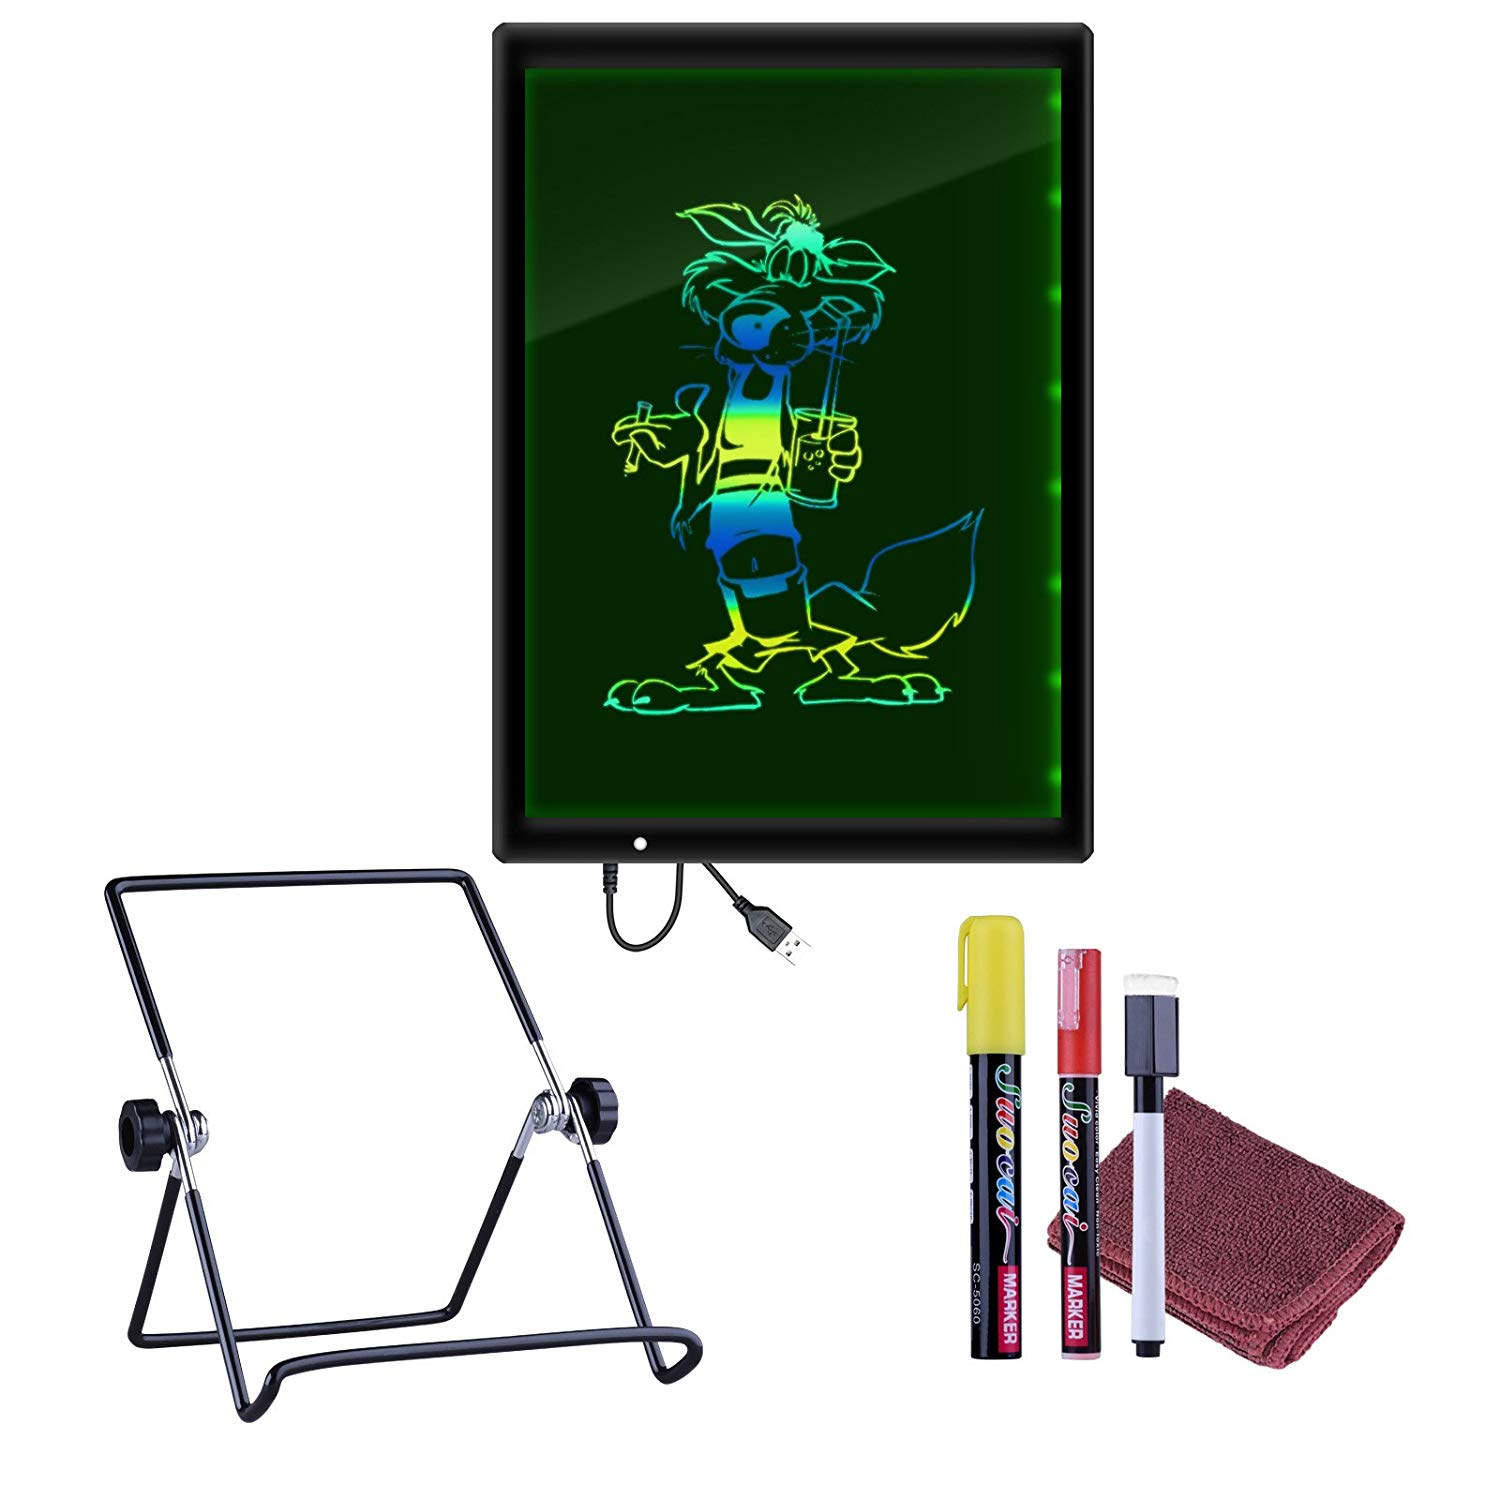 1500x1500 led message board, m way in led message writing and drawing